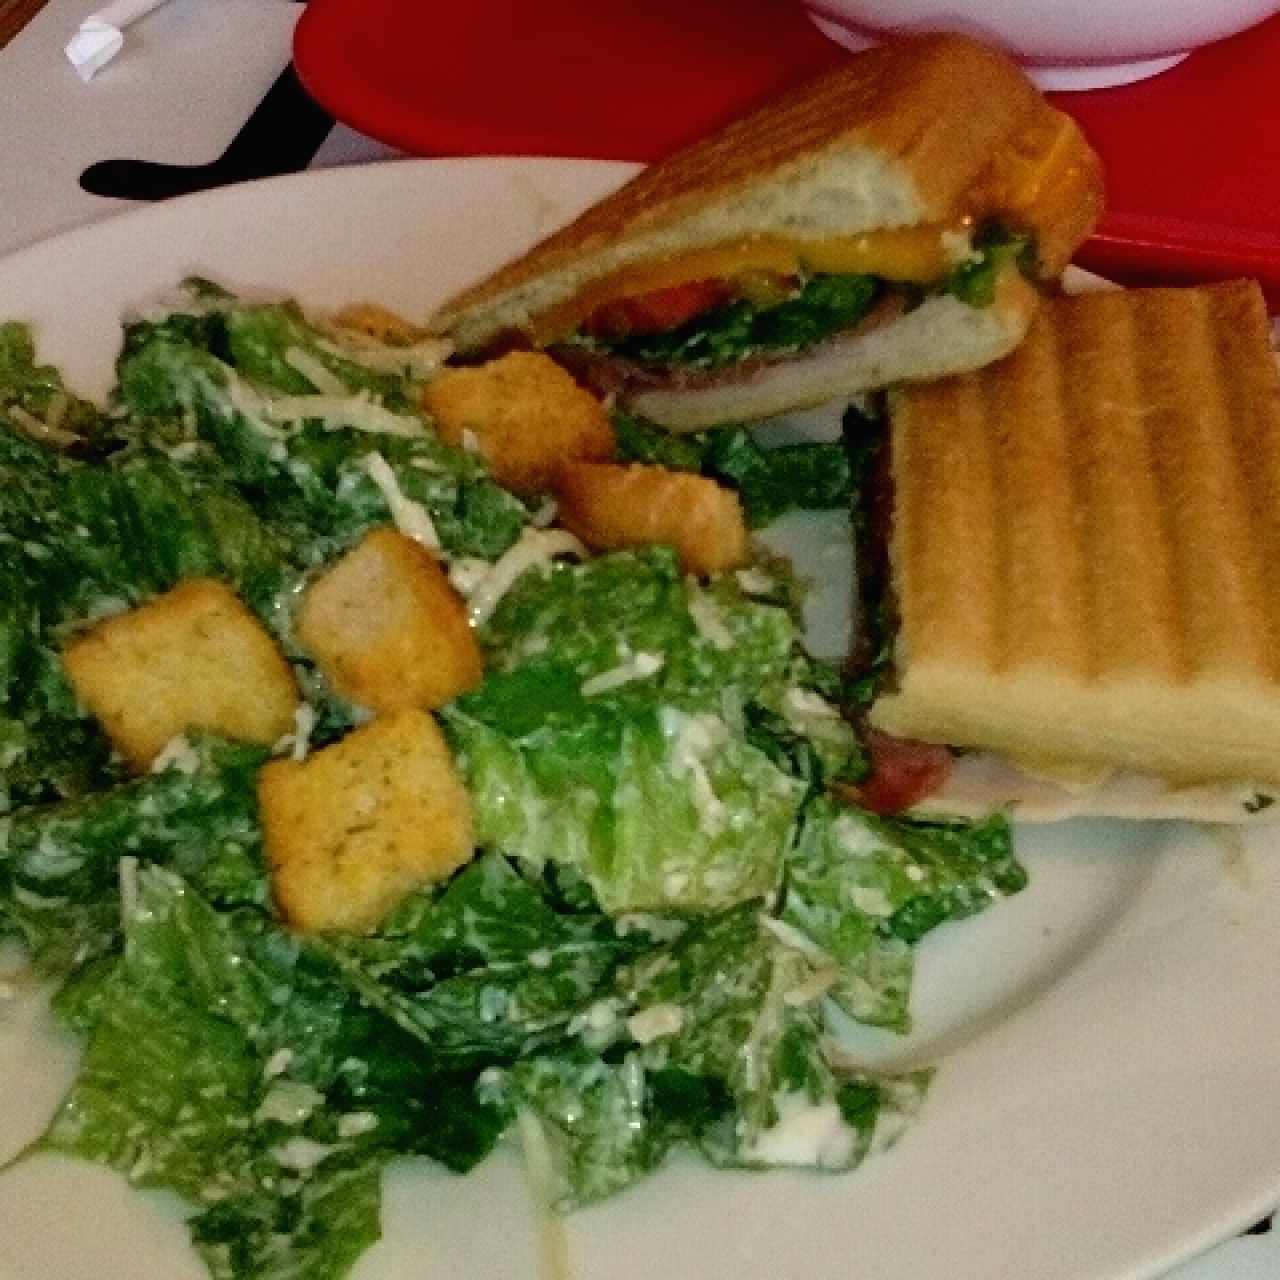 Sandwich Club con salad